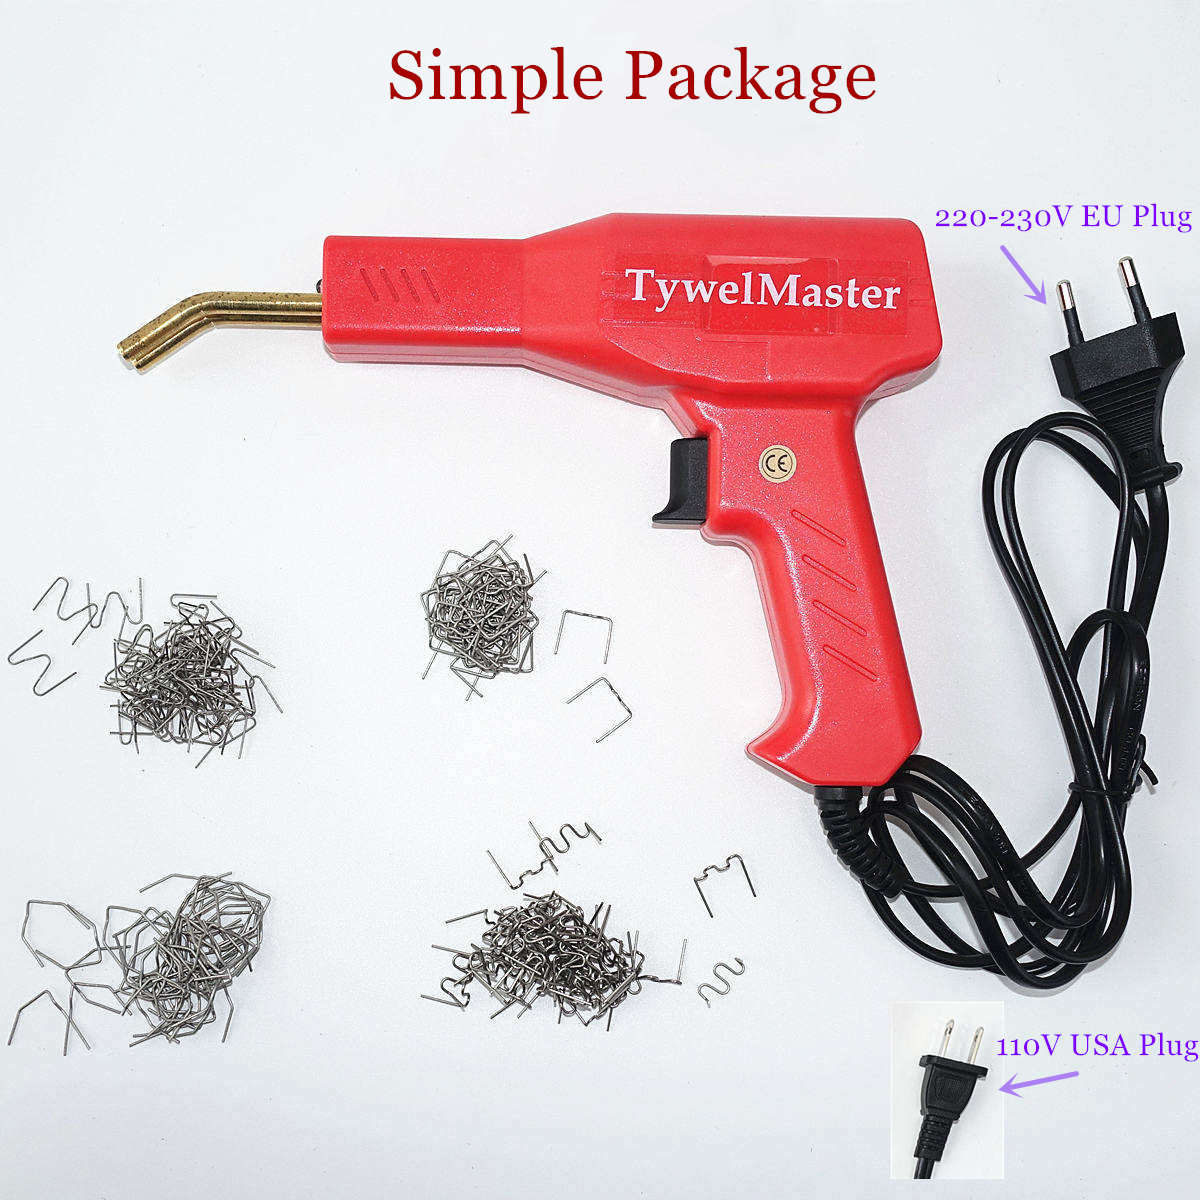 Tools : Handy Plastic Welder Garage Tools Hot Staplers Machine Staple PVC Plastic Repairing Machine Car Bumper Repair Hot Stapler